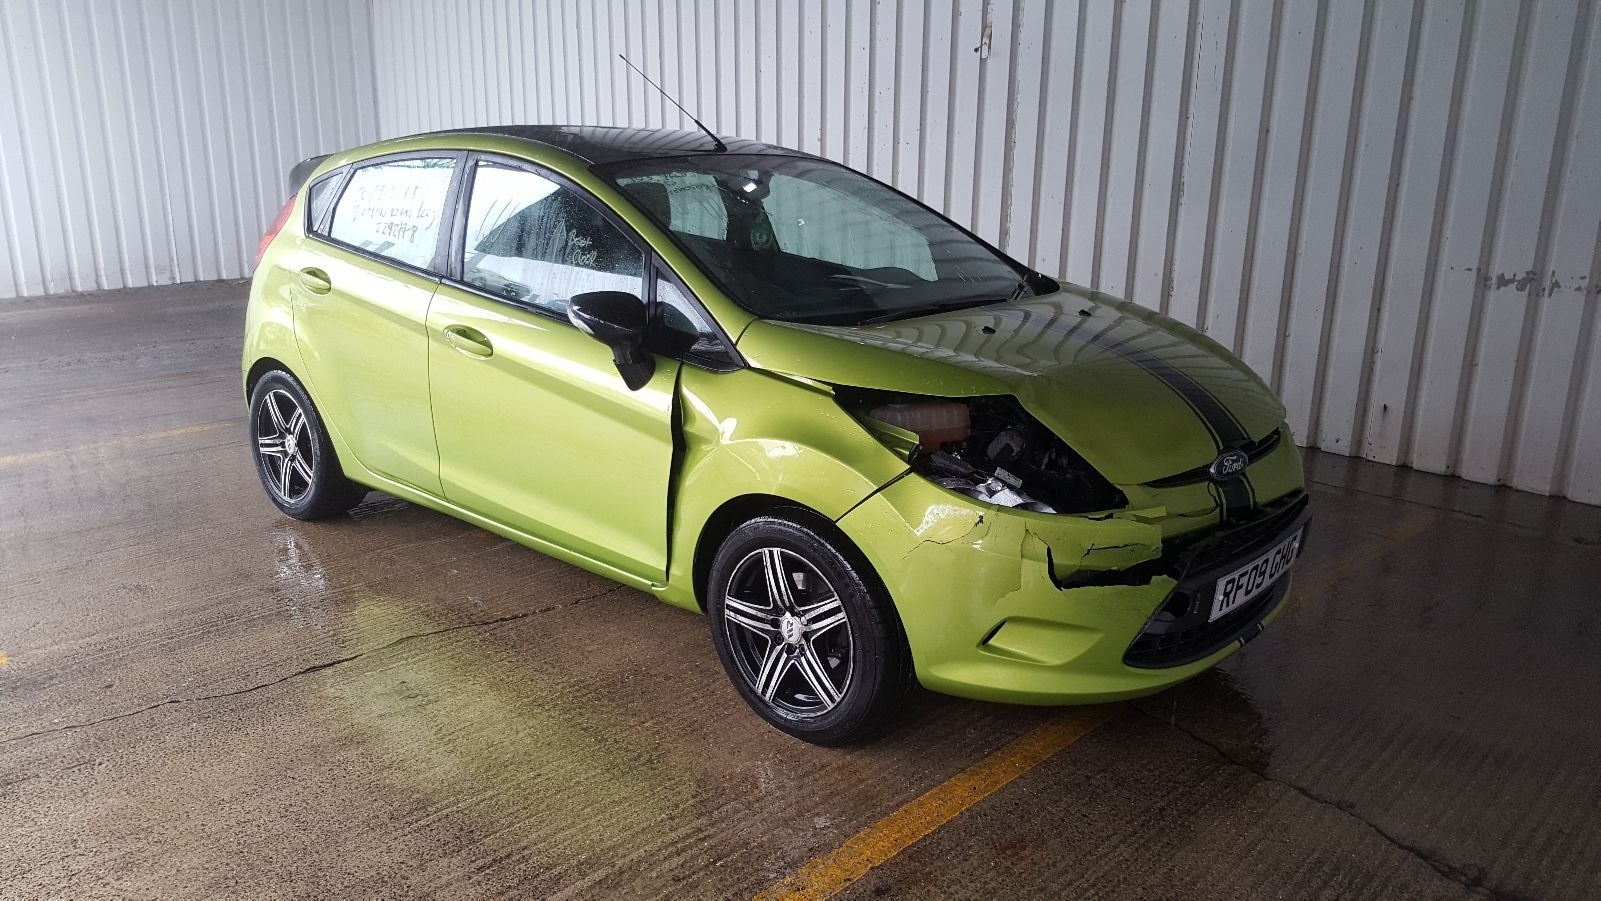 Image for a 2009 Ford Fiesta 1.6 Diesel HHJE Engine